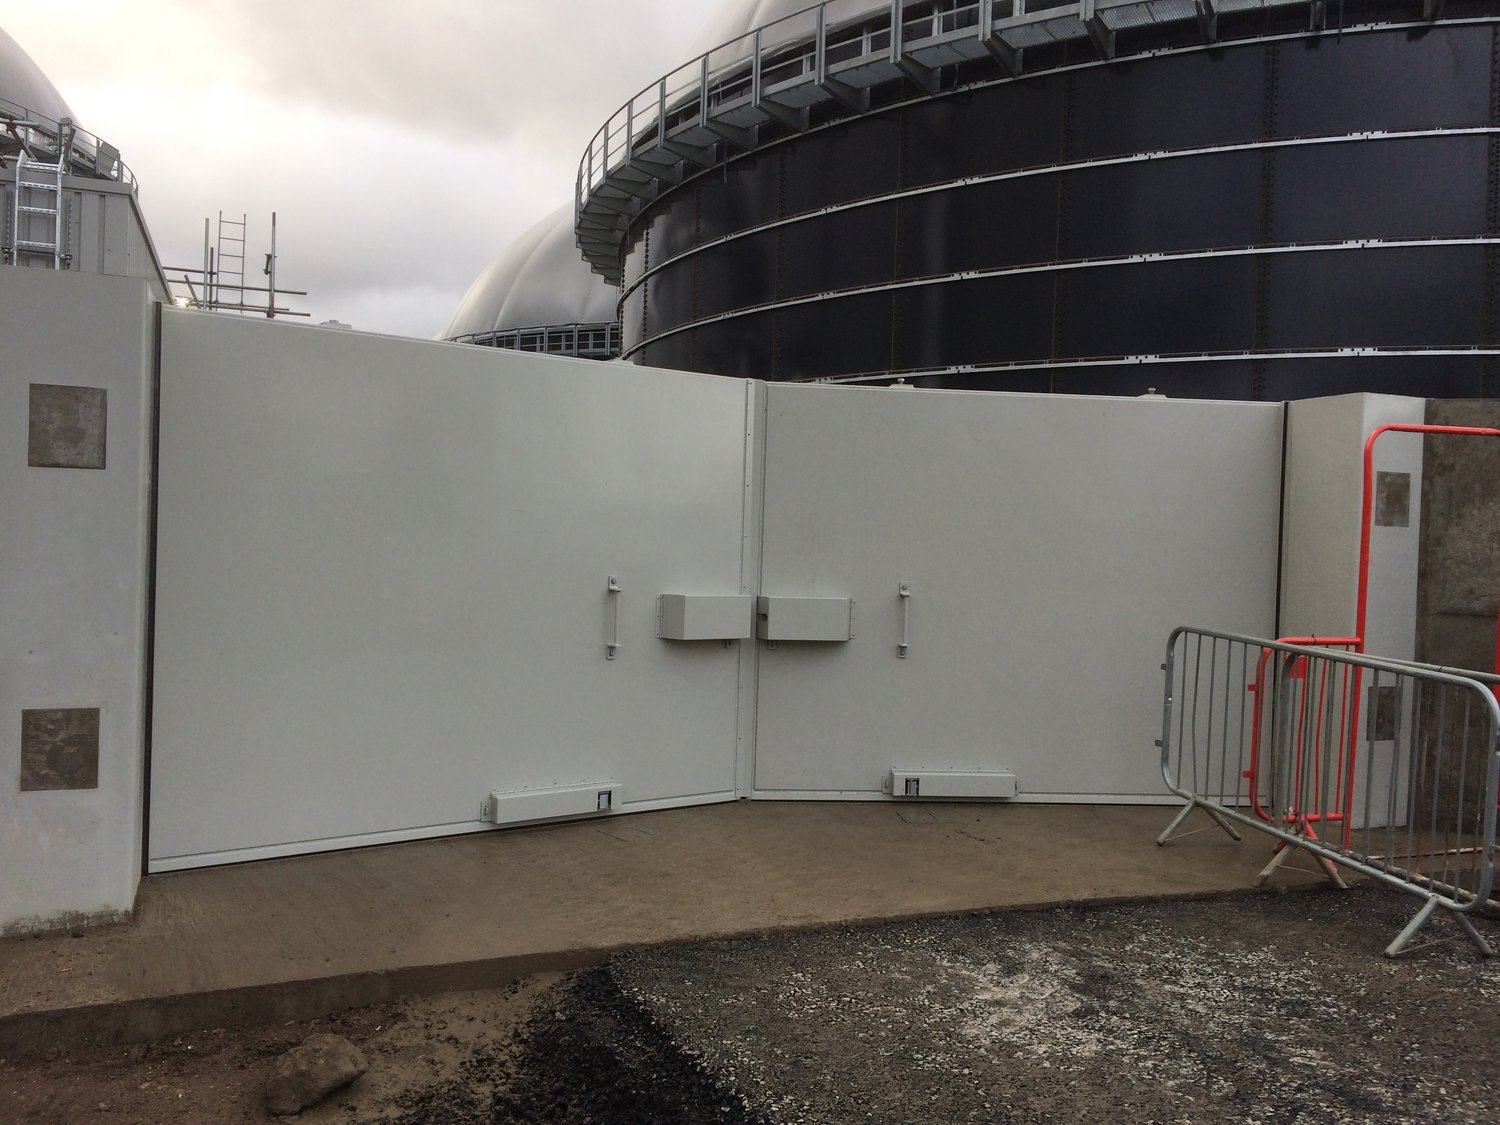 A double bund gate closed and locked. Ready  to protect the environment from any chemical  contamination.